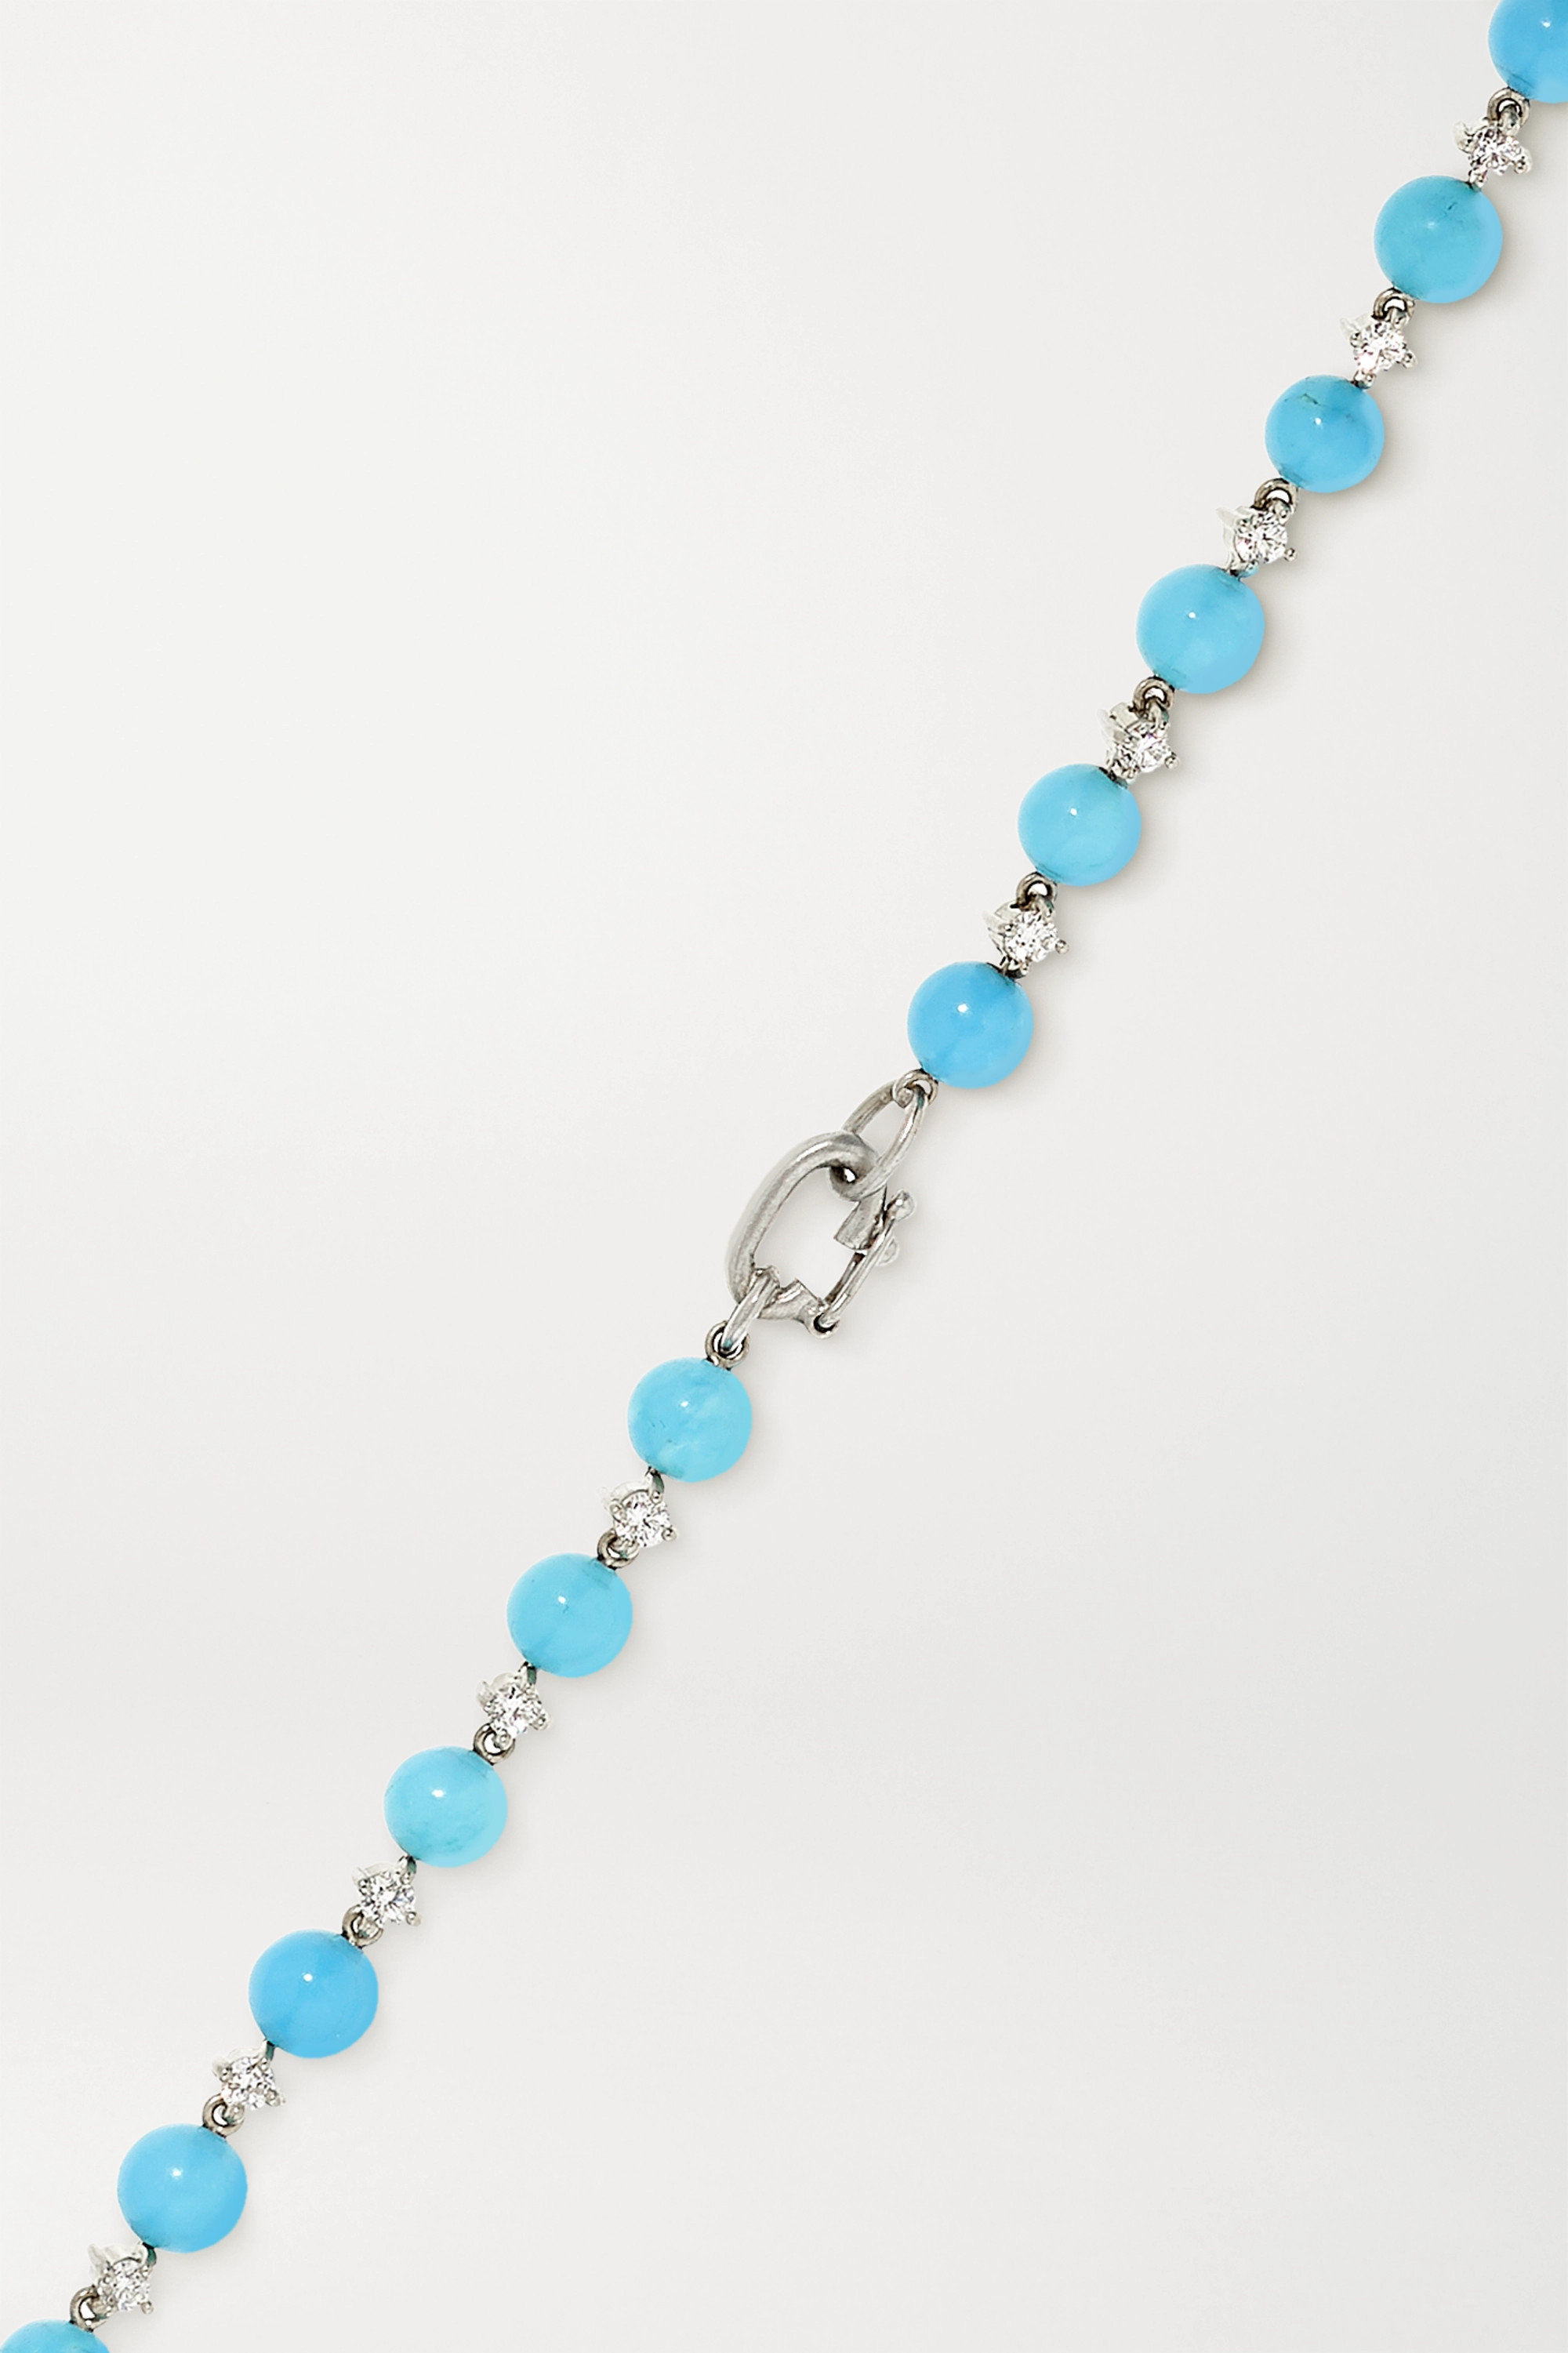 Irene Neuwirth Collier en or blanc 18 carats, turquoises et diamants Gumball